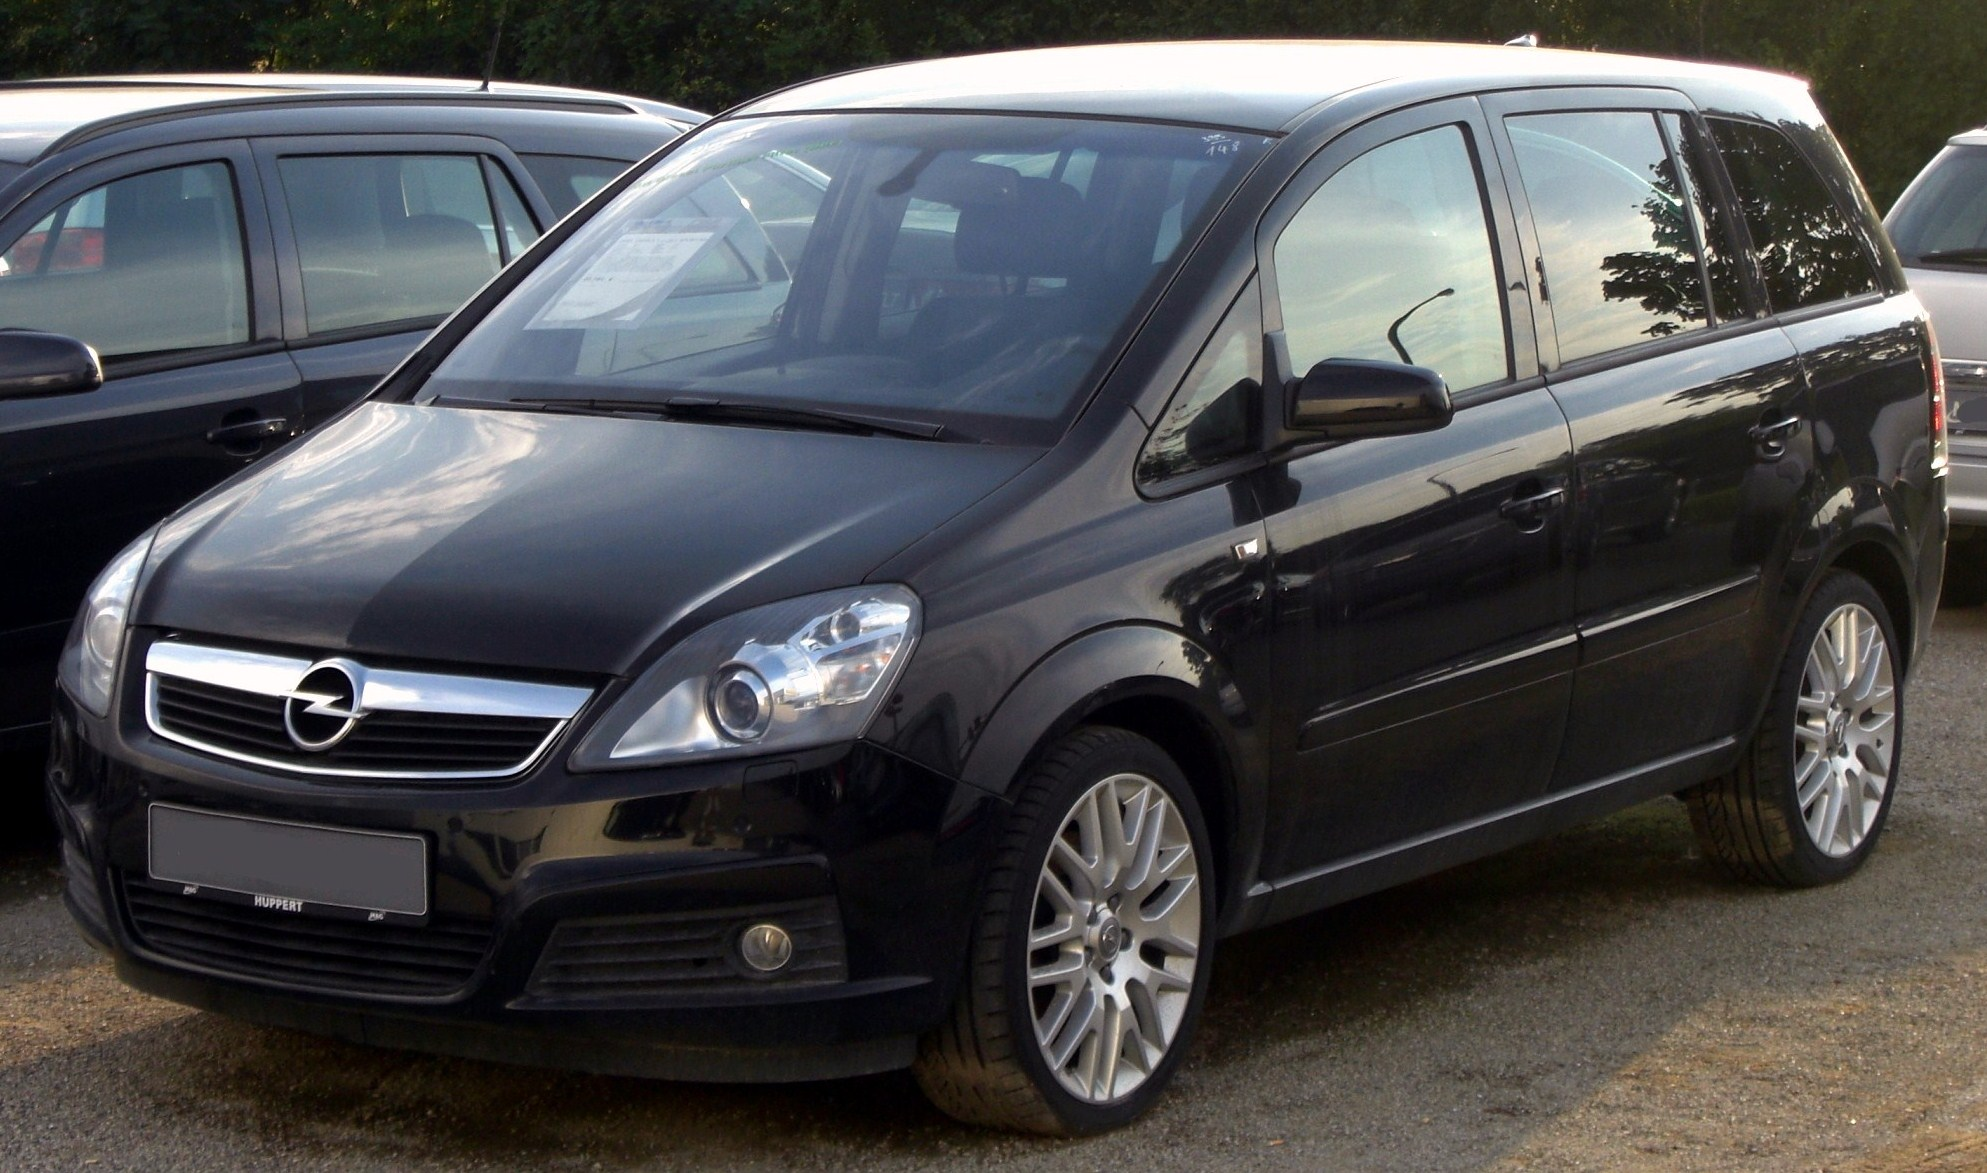 Opel Zafira 1.9 2010 photo - 1